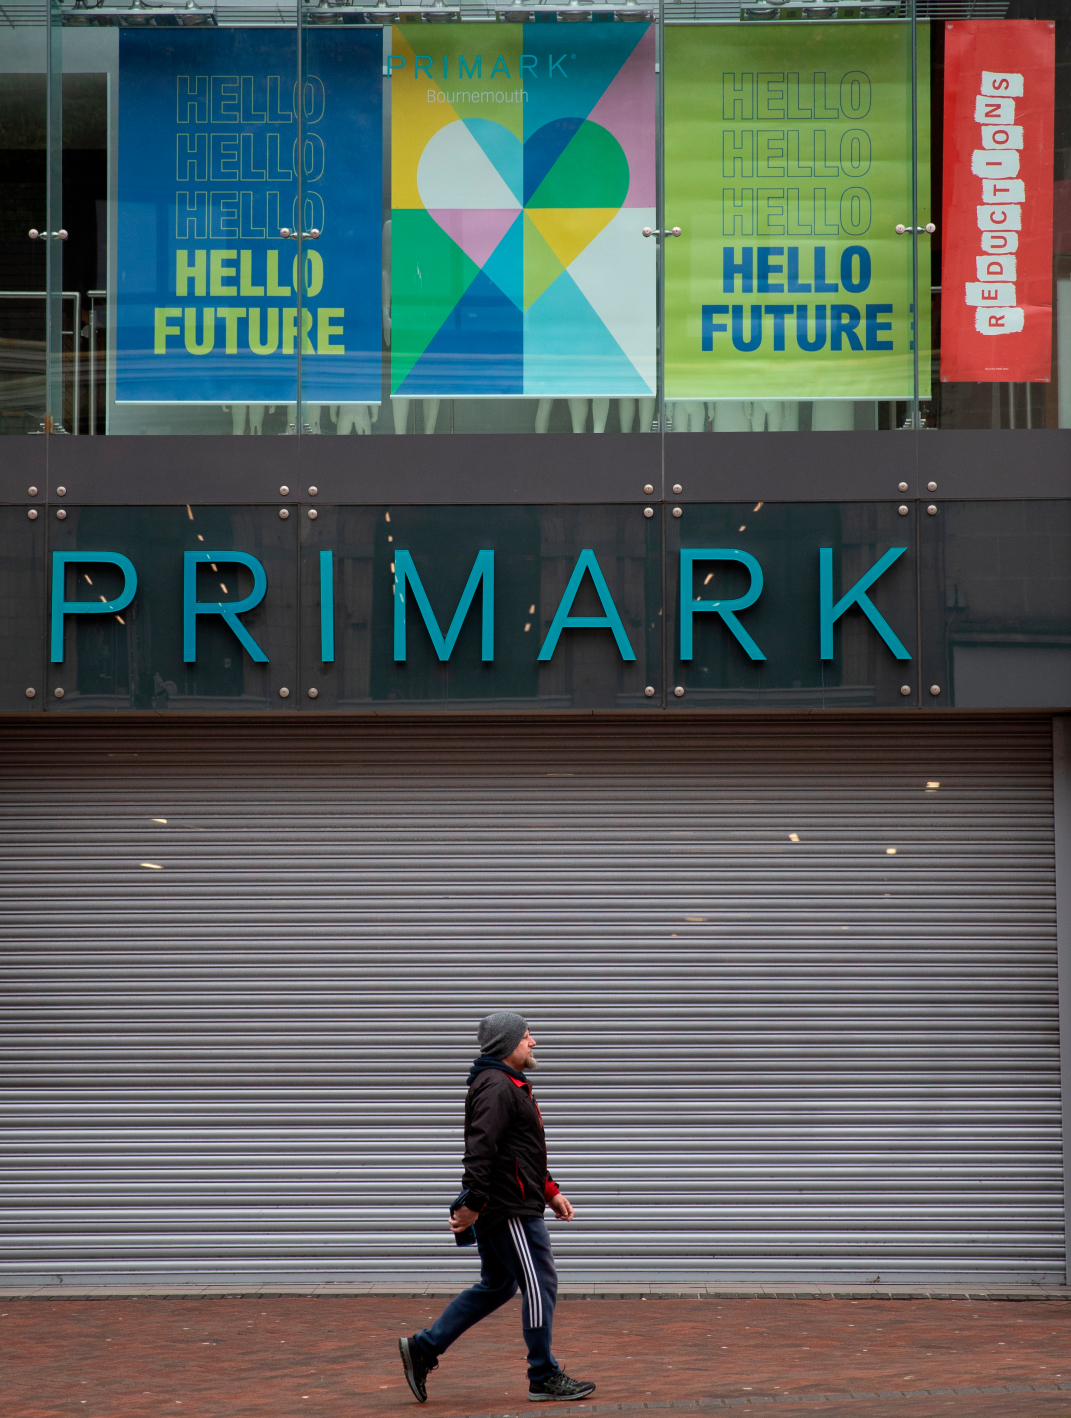 Primark's lockdown loss balloons higher as 305 stores stay closed due to lockdown measures across U.K. and parts of Europe.